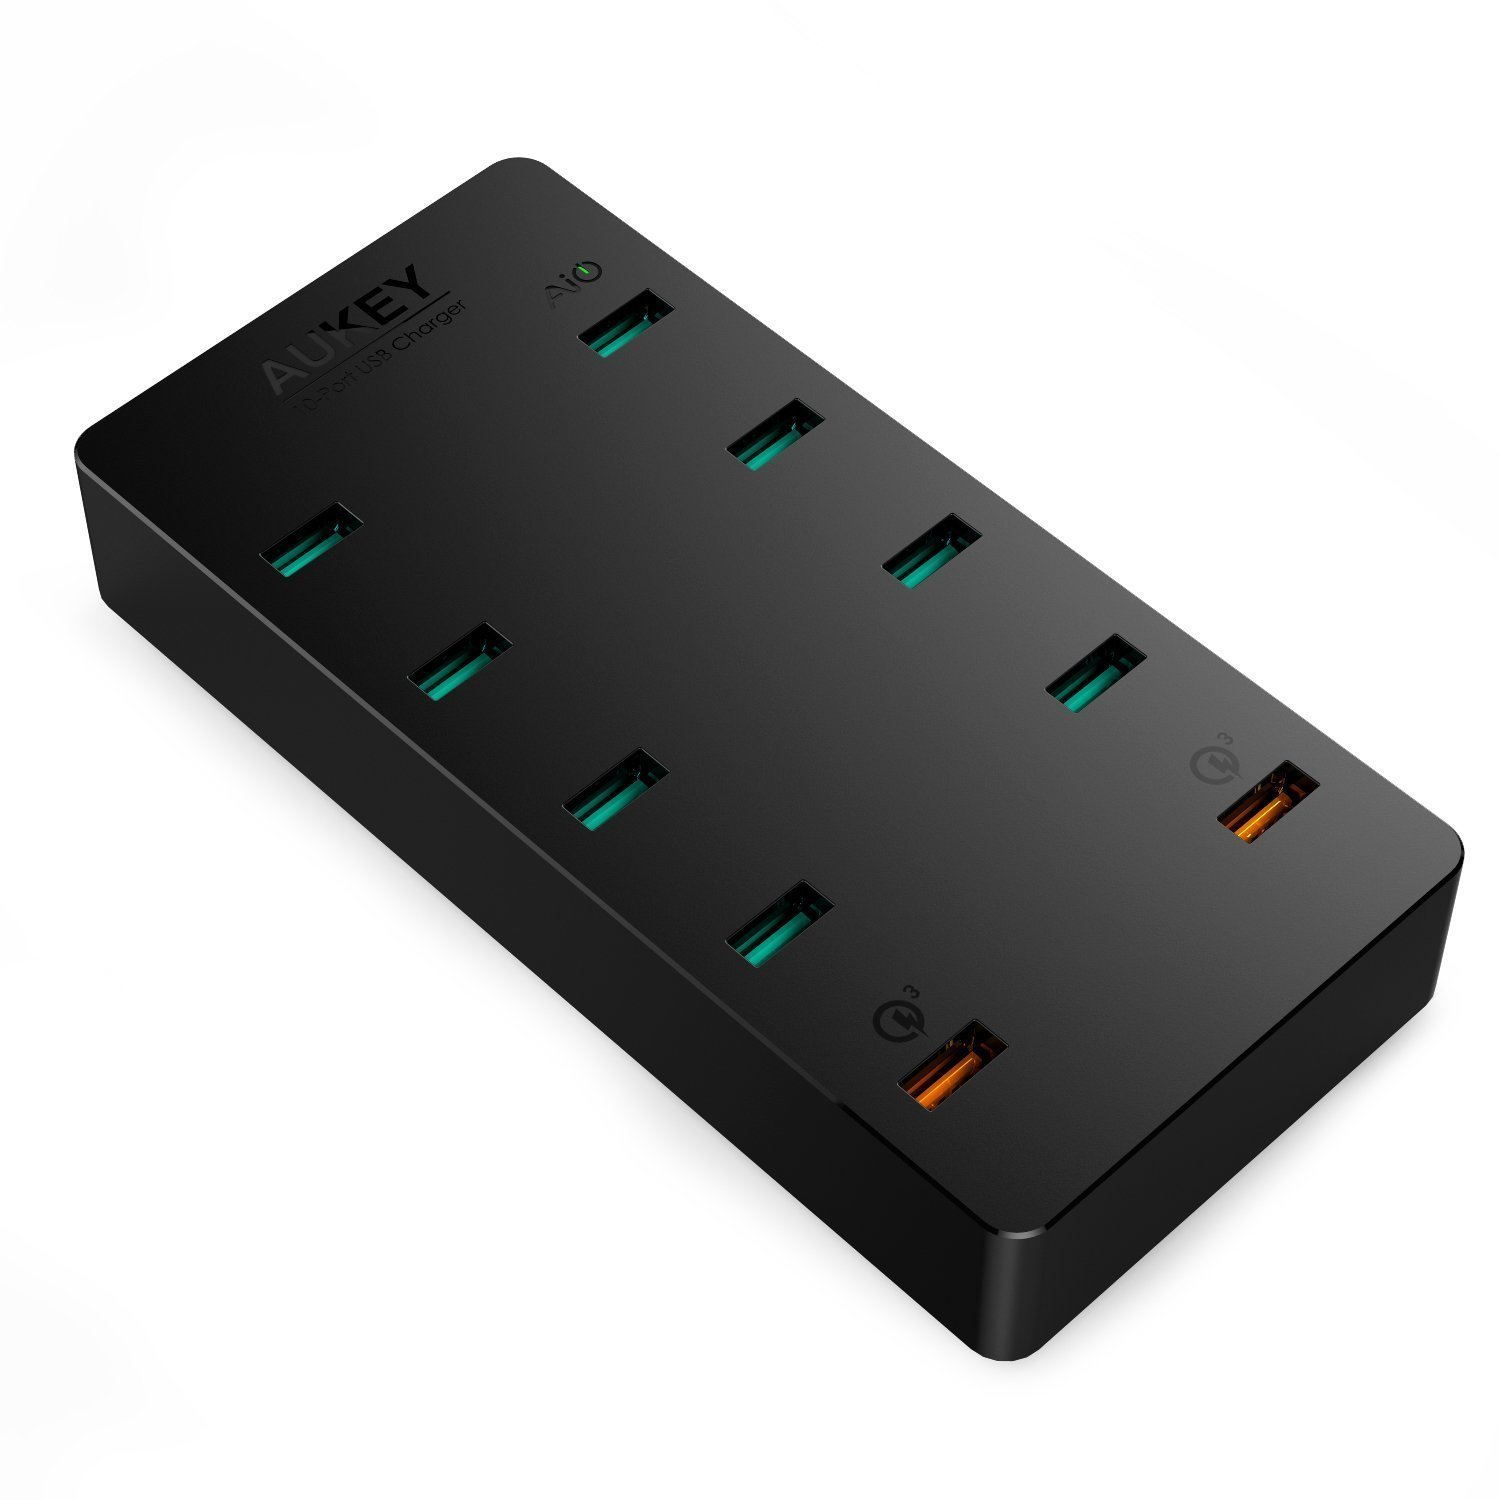 Aukey Quick Charge 3.0 10 Port 70W USB charger